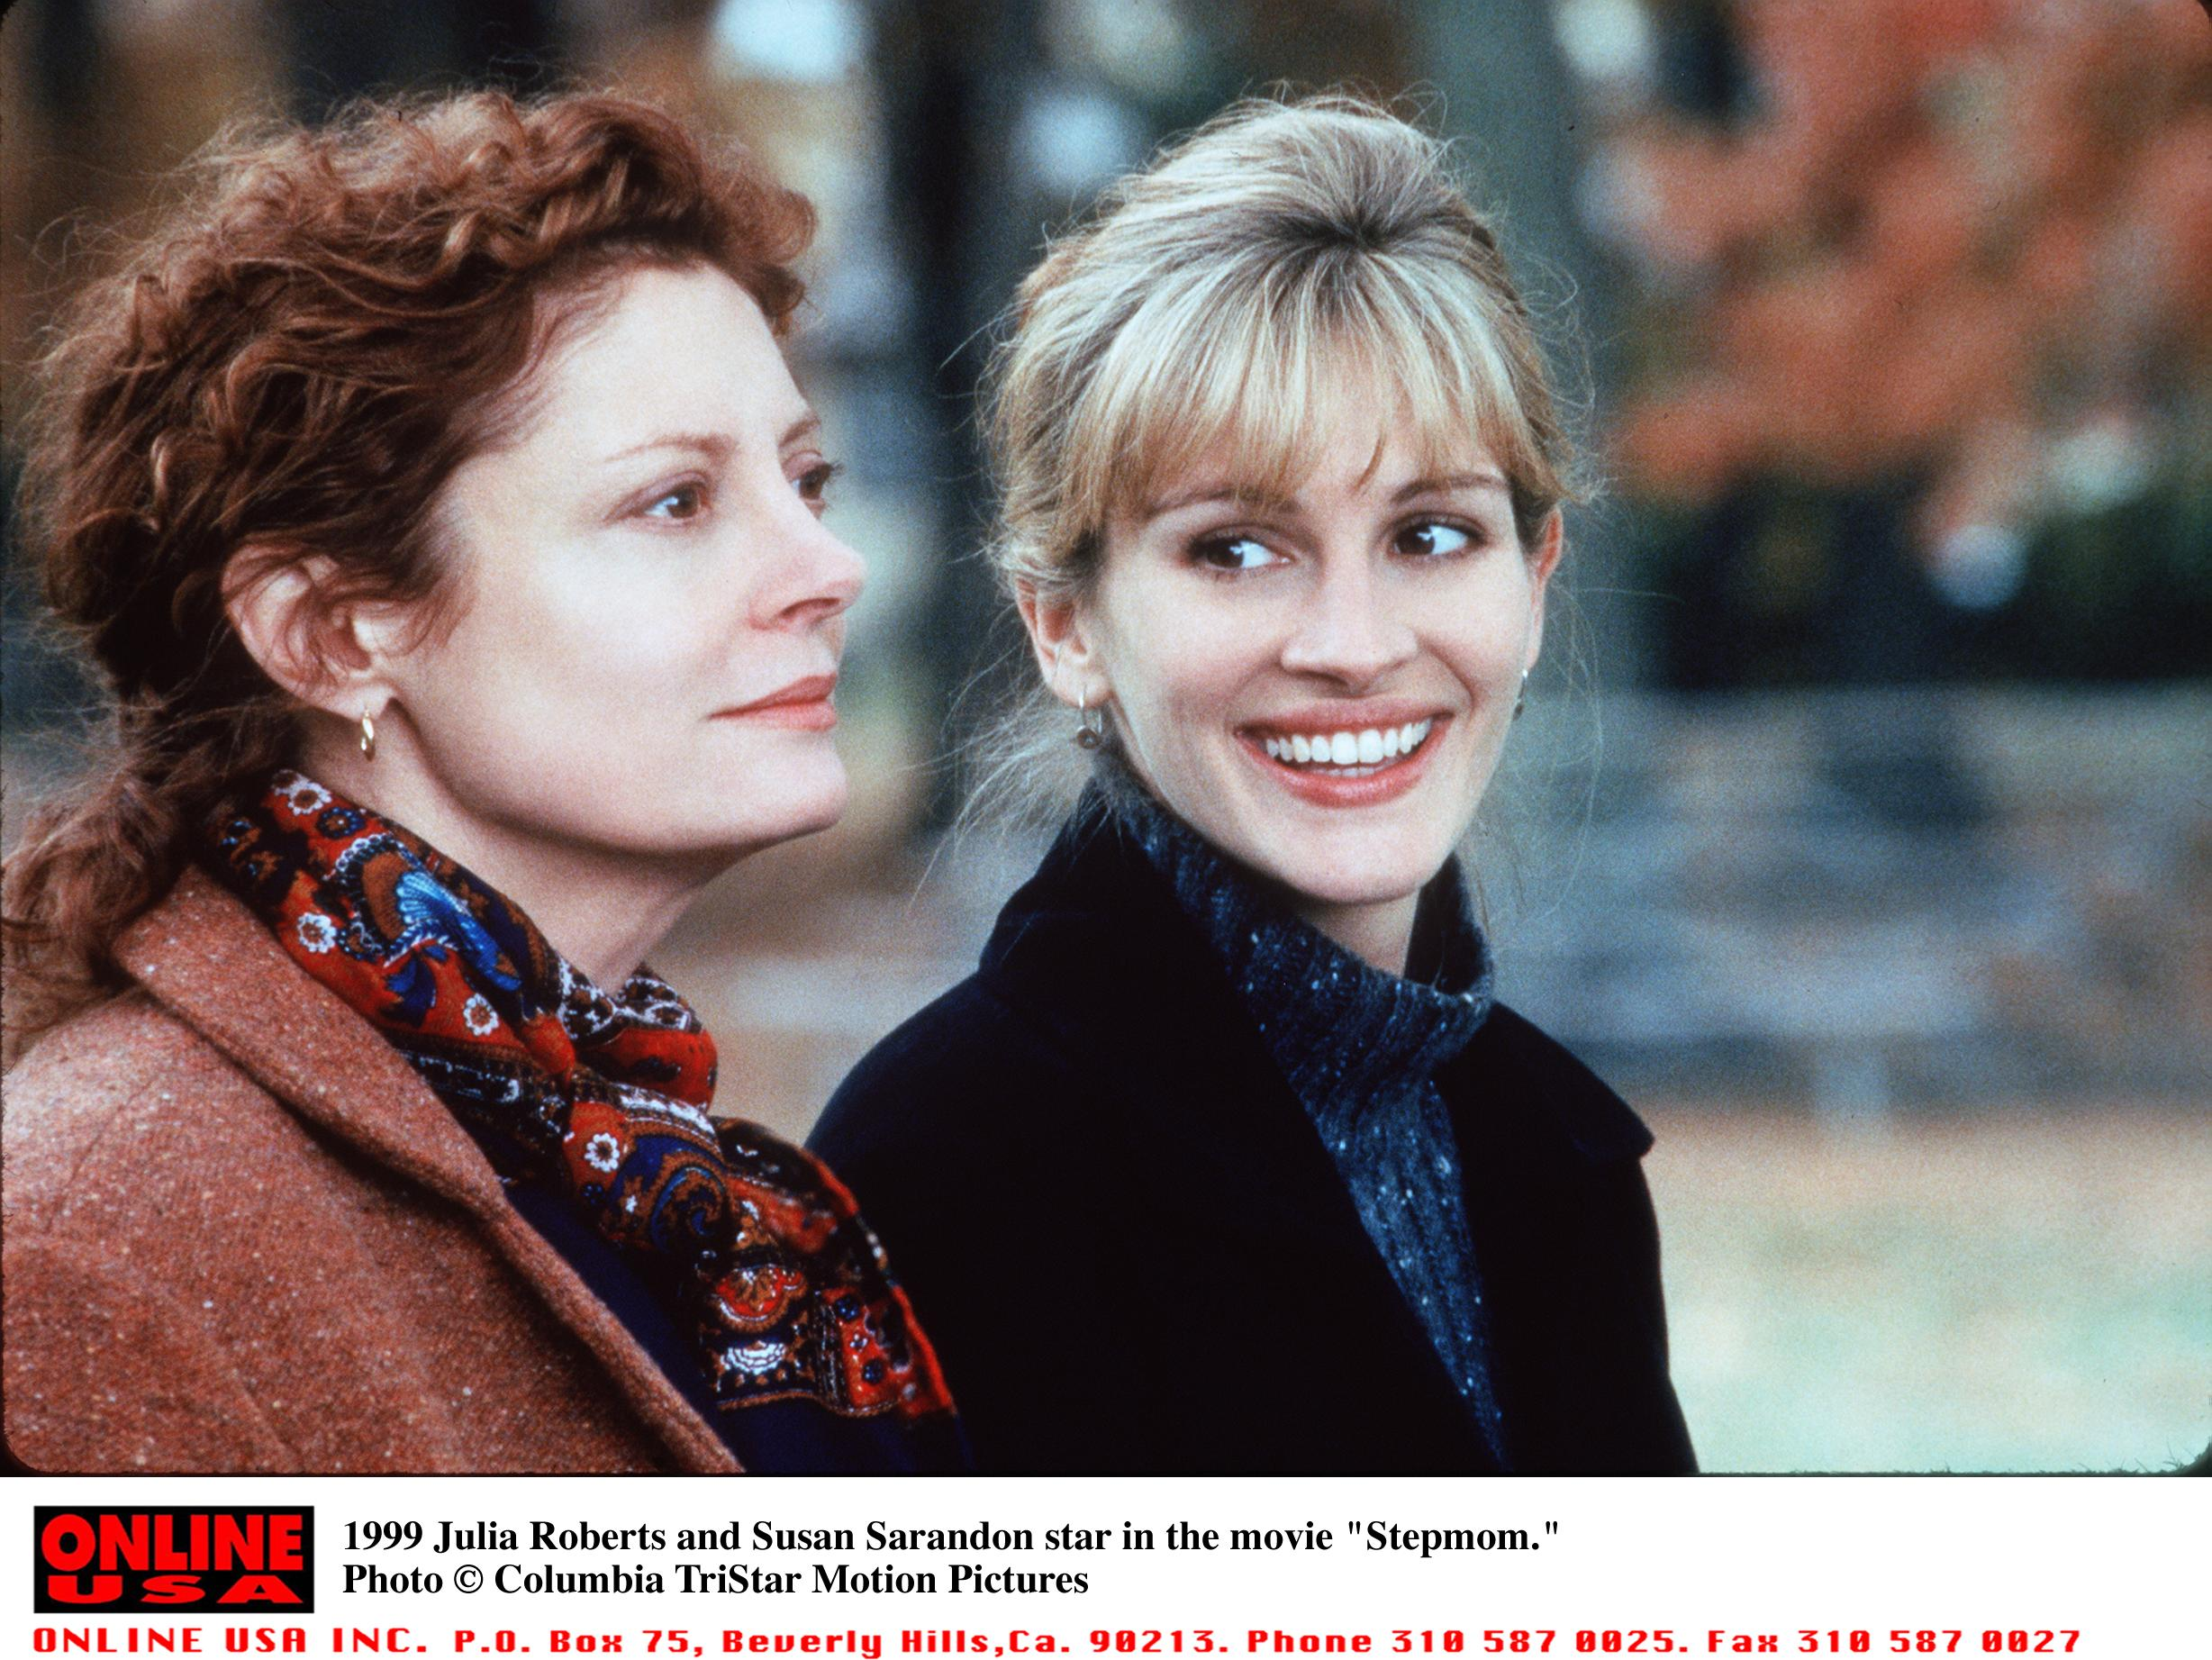 Susan Sarandon Finally Settles Rumors She Feuded with Julia Roberts on Stepmom